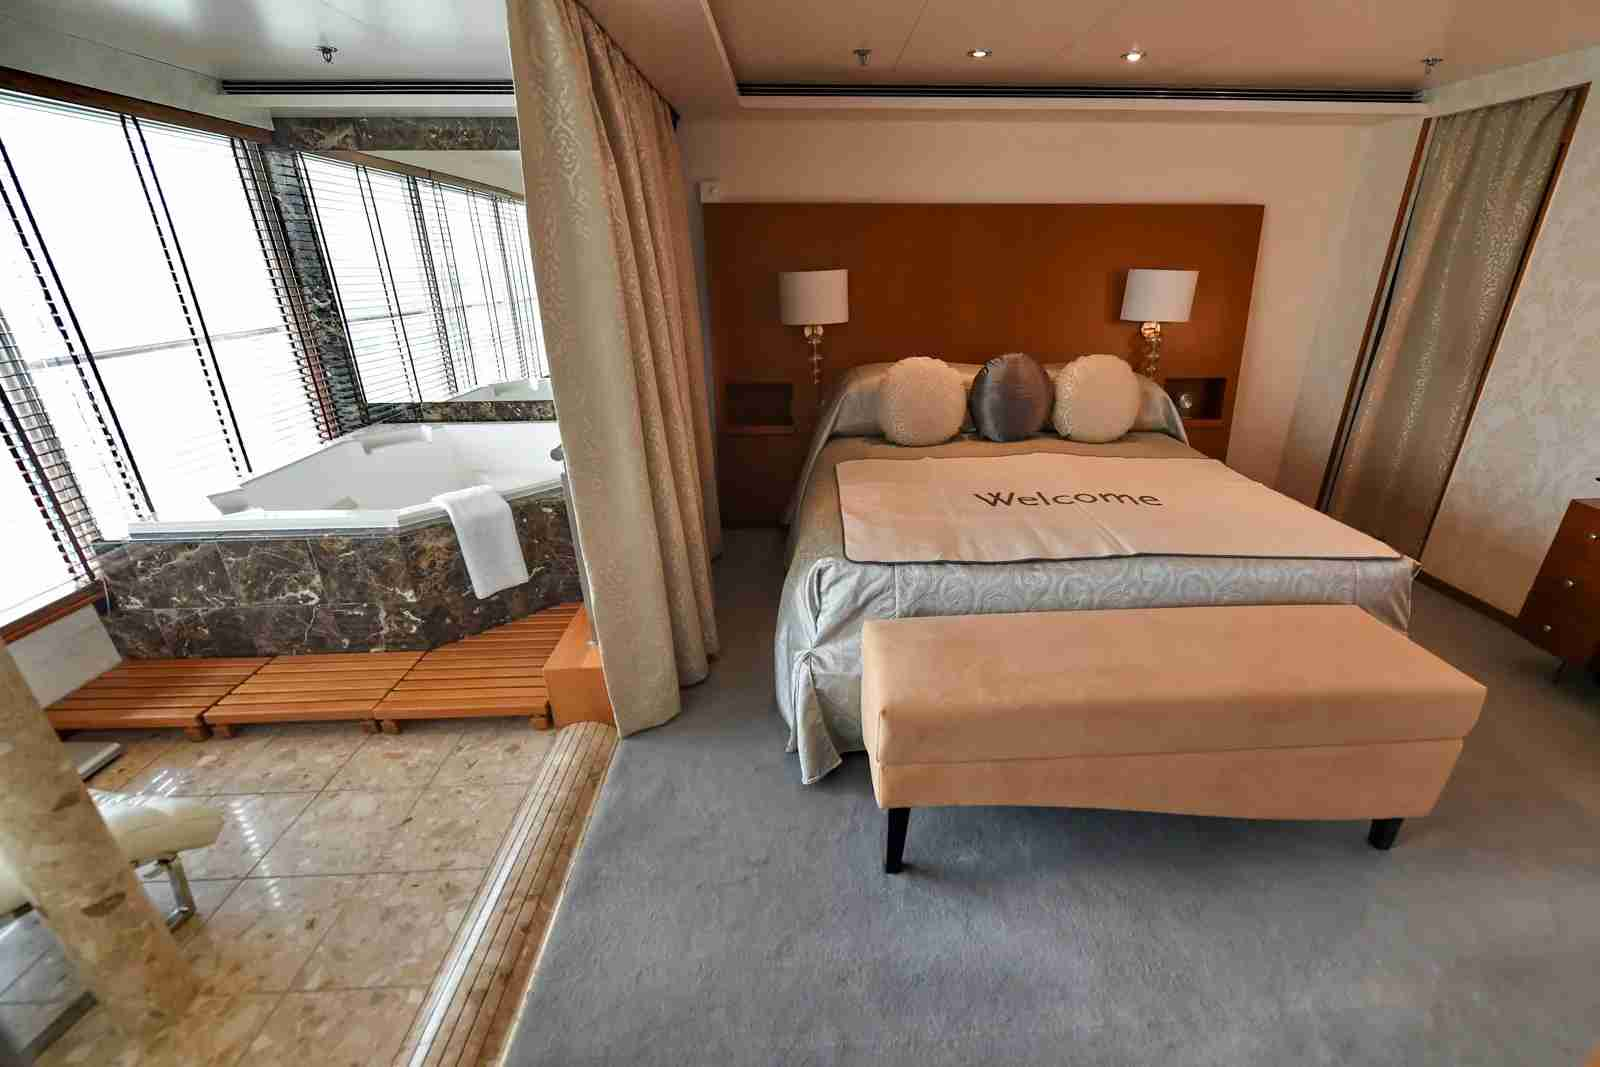 A view of the luxury suite inside the Regent Seven Seas Voyager cruise ship. (Photo by ROSLAN RAHMAN/AFP/Getty Images)